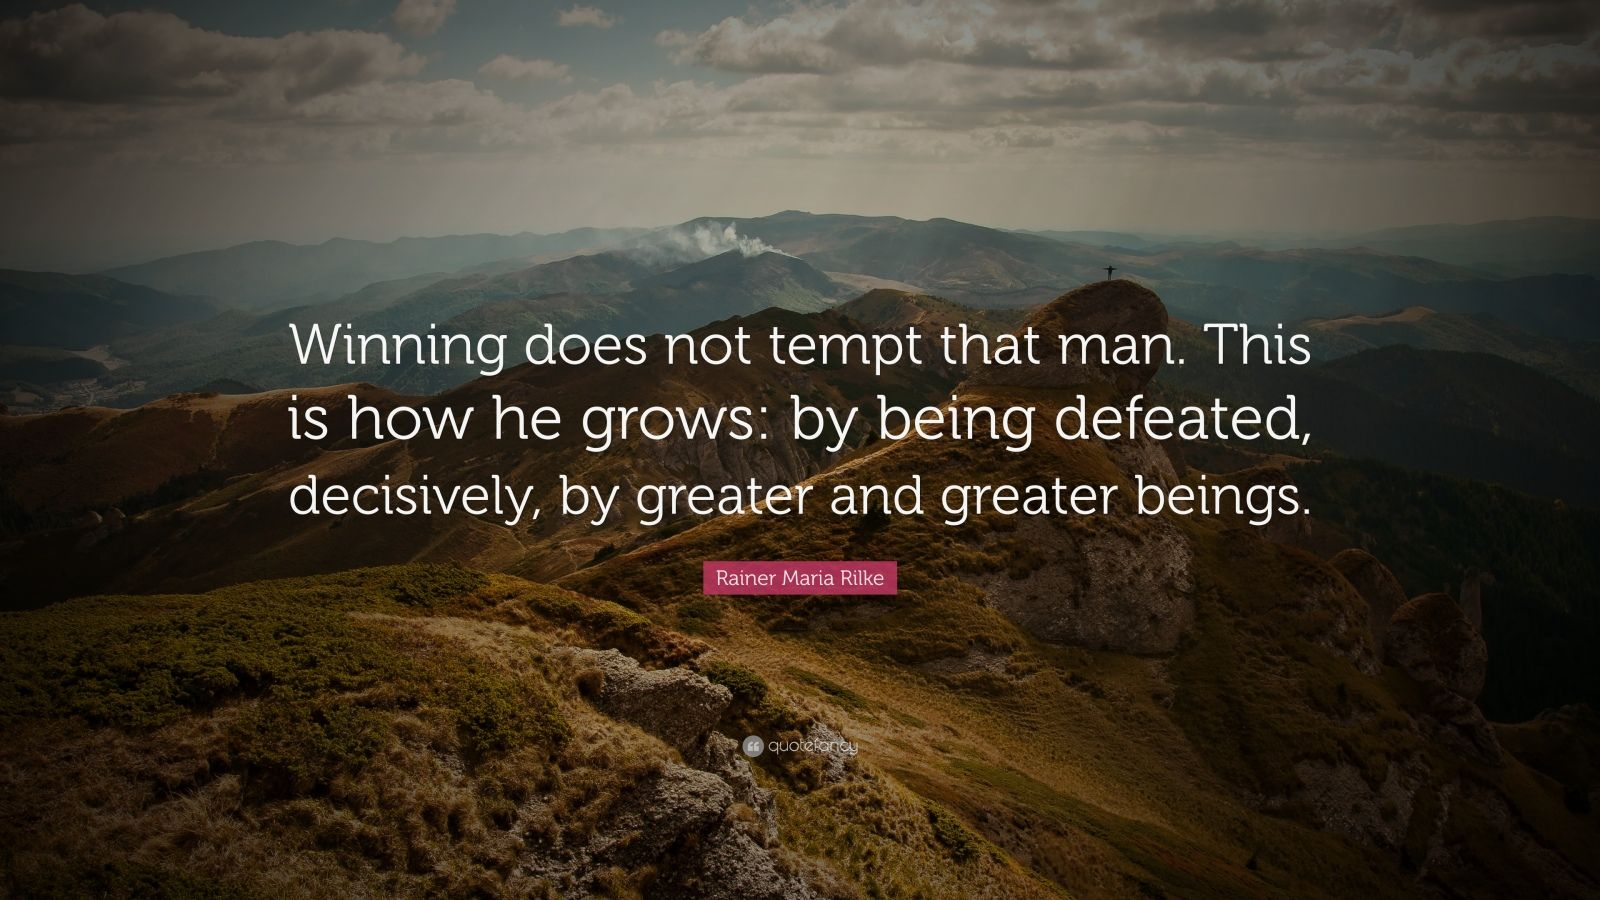 """Rainer Maria Rilke Quote: """"Winning does not tempt that man. This is how he grows: by being defeated, decisively, by greater and greater beings."""""""